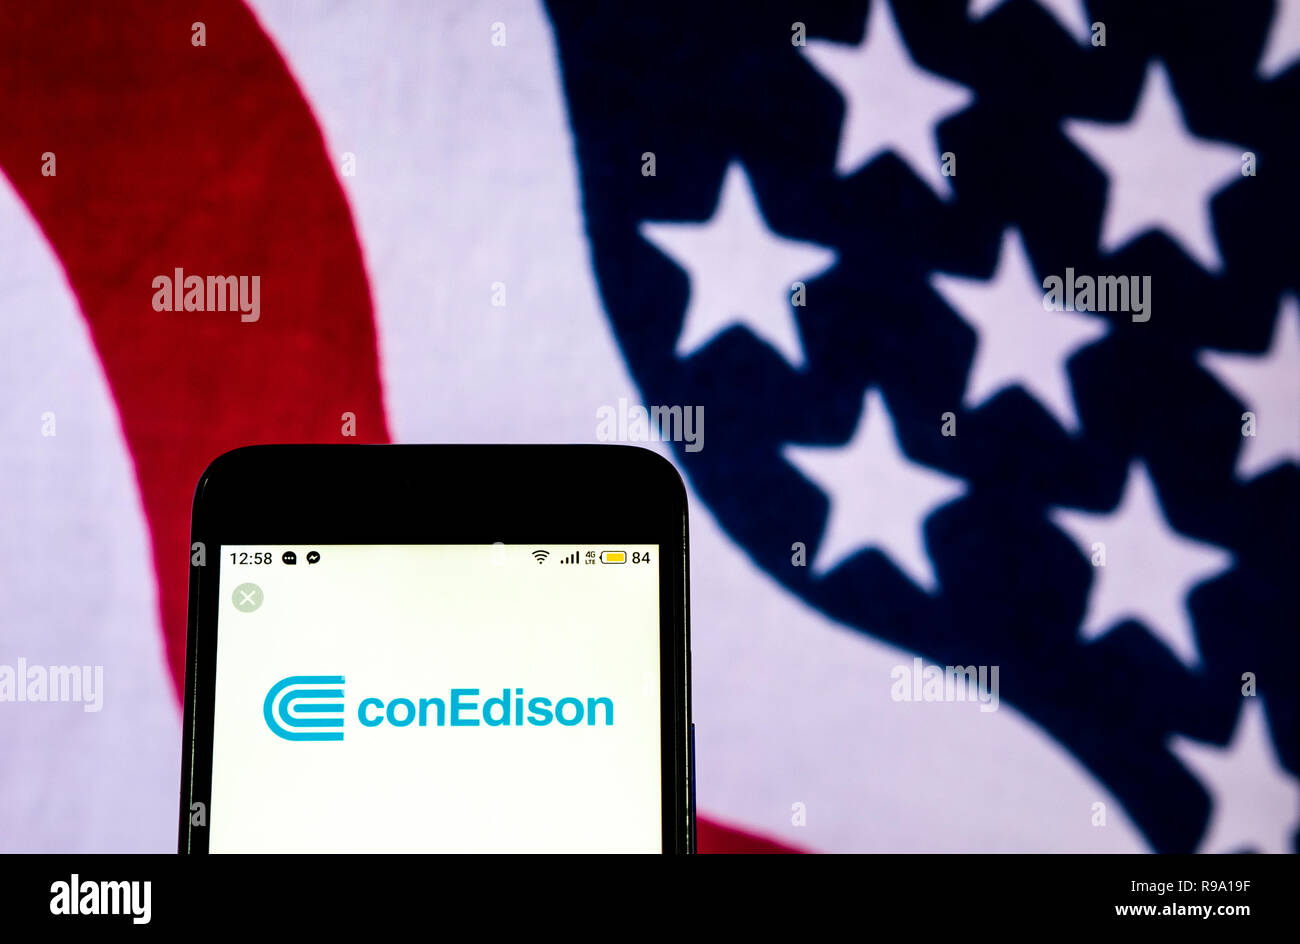 Consolidated Edison Energy company logo seen displayed on smart phone - Stock Image